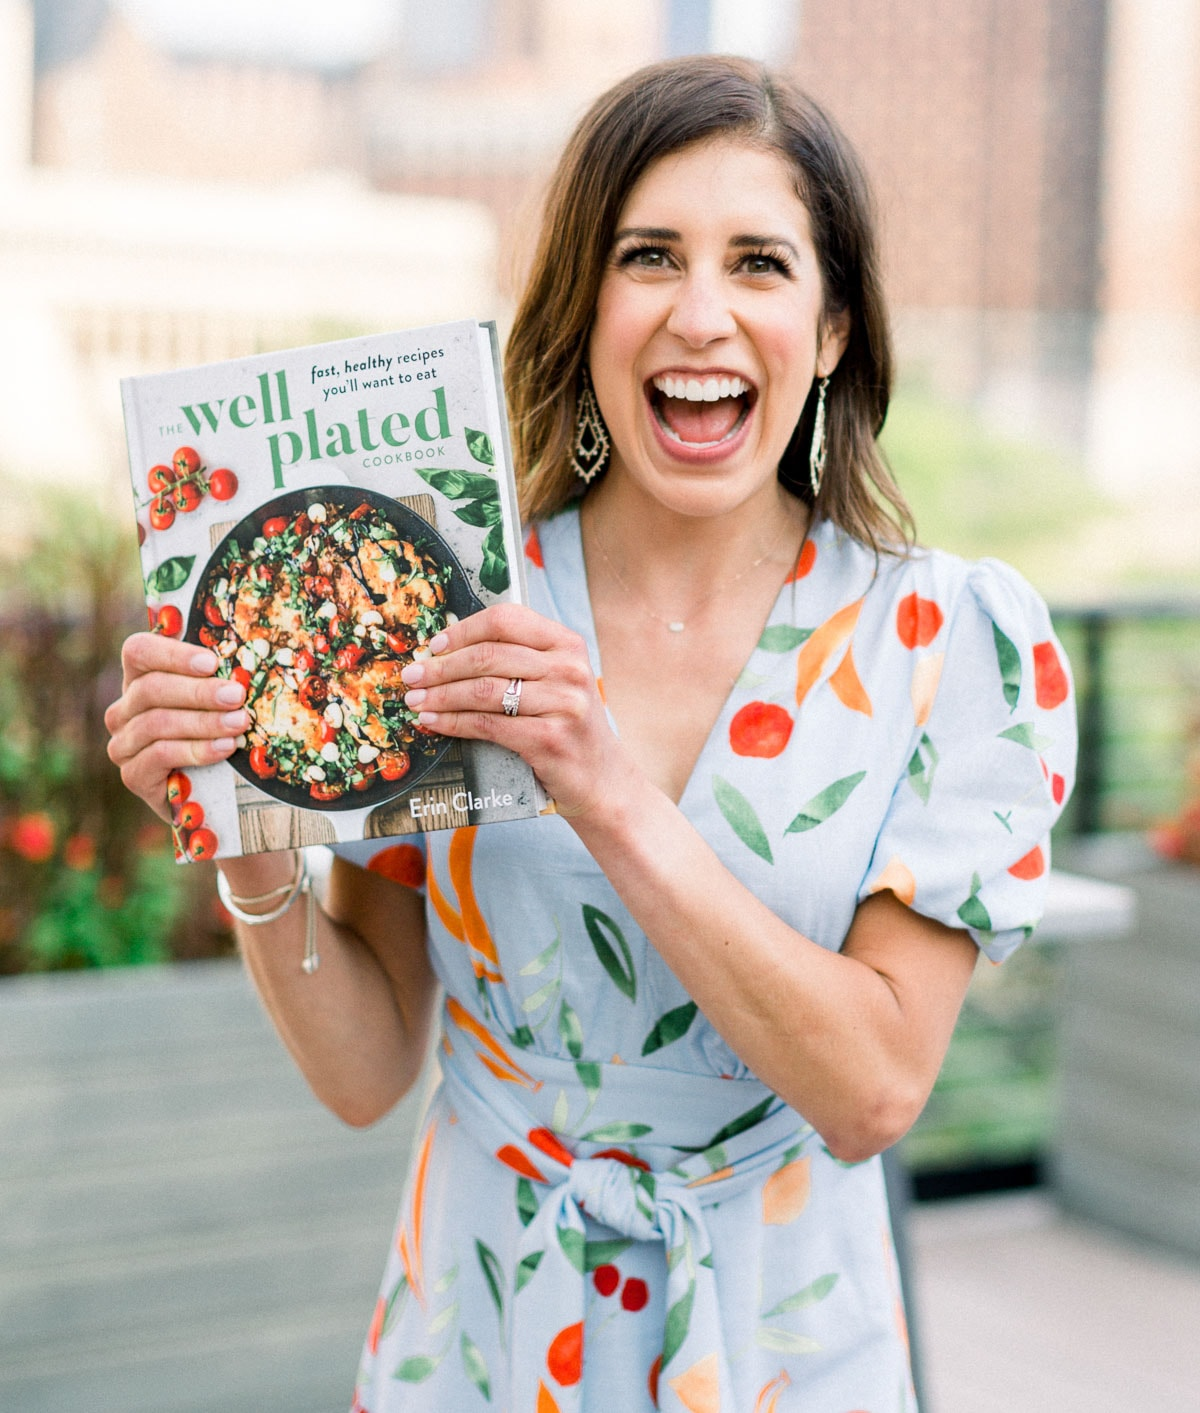 Erin Clarke holding the Well Plated Cookbook